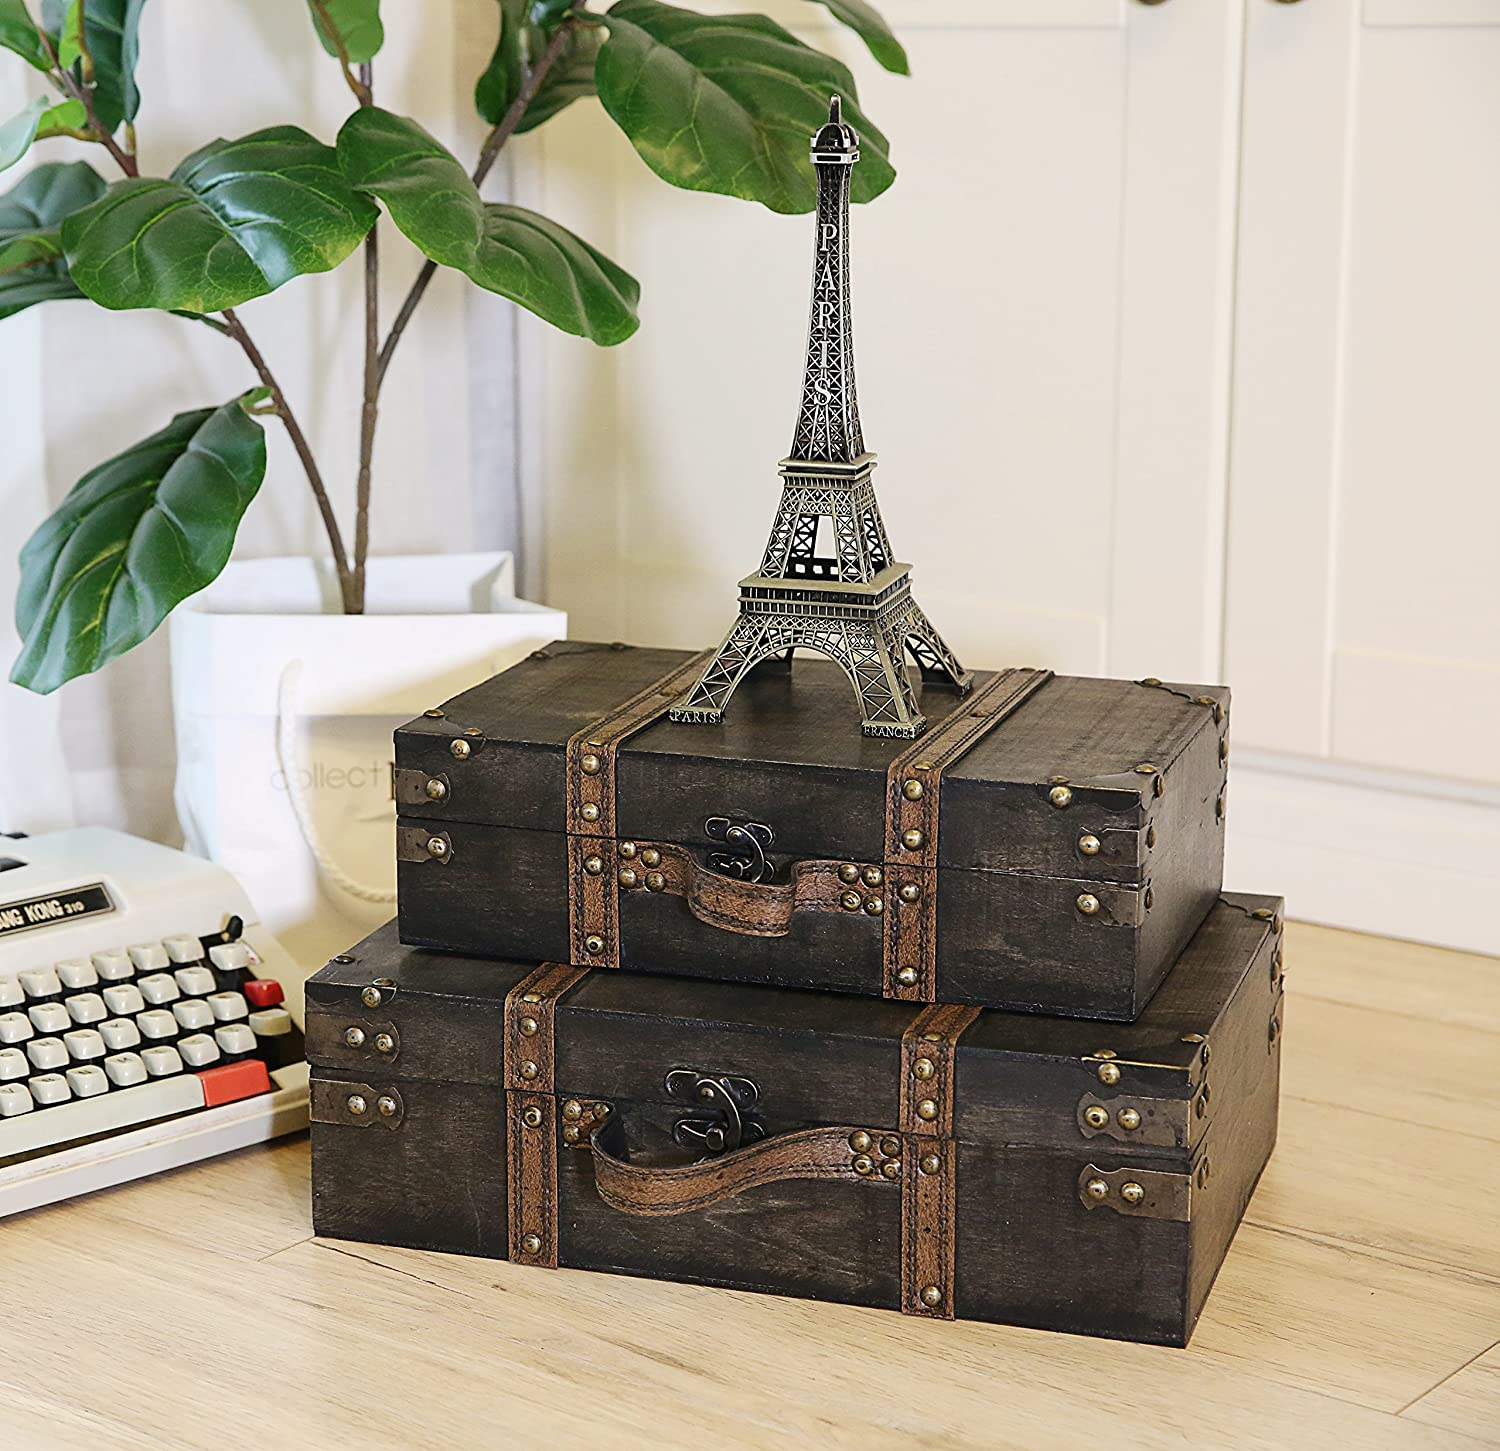 SLPR Jackson Wooden Trunk with Straps Old-Fashioned Antique Vintage Style Nesting Trunks for Shelf Home Decor Birthday Parties Wedding Decoration Displays Crafts FM-MOP8-MQ55 Set of 2, Grey Wood